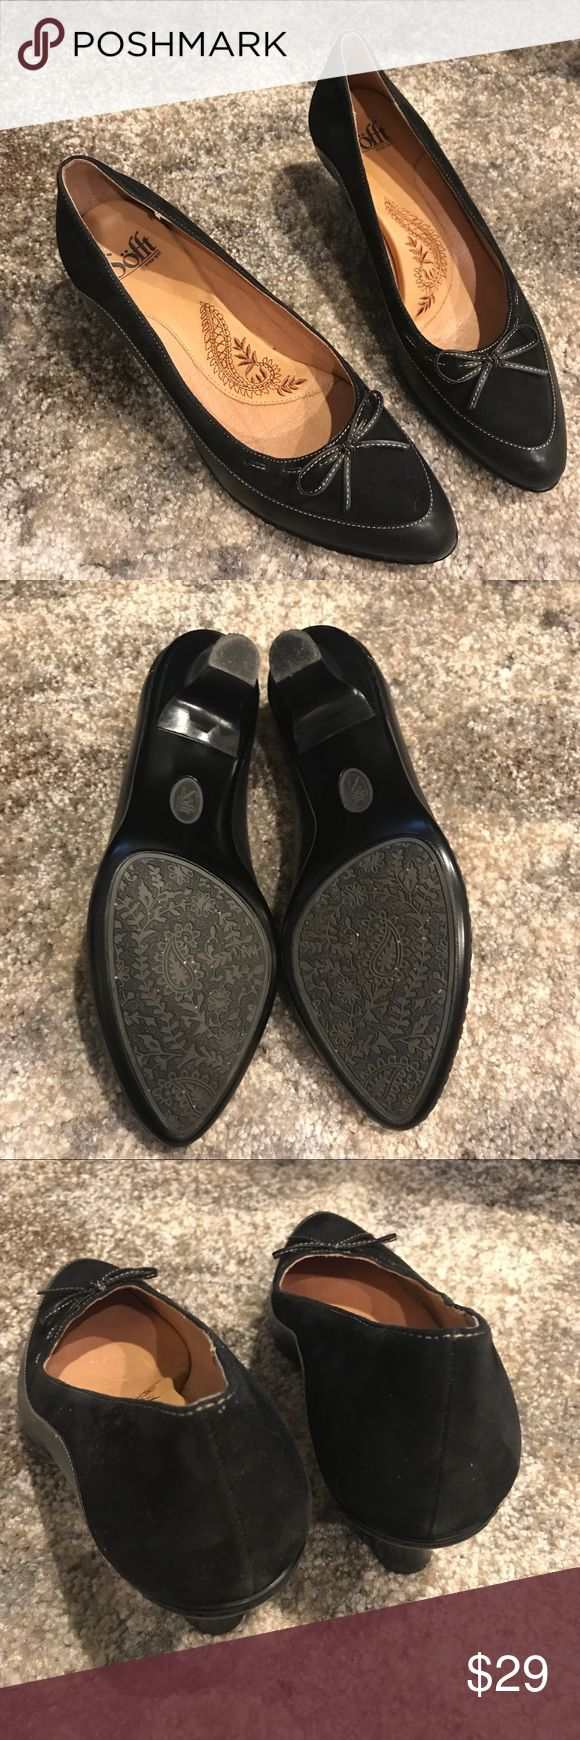 Sofft Heels w Bow and Stitching Black Size 9.5 Gently used. Nice condition with a few marks as seen in pics but hard to see while wearing. Footbed and bottoms are nice. True to Size. Cute classic comfortable heeled shoe by Sofft. Sofft Shoes Heels